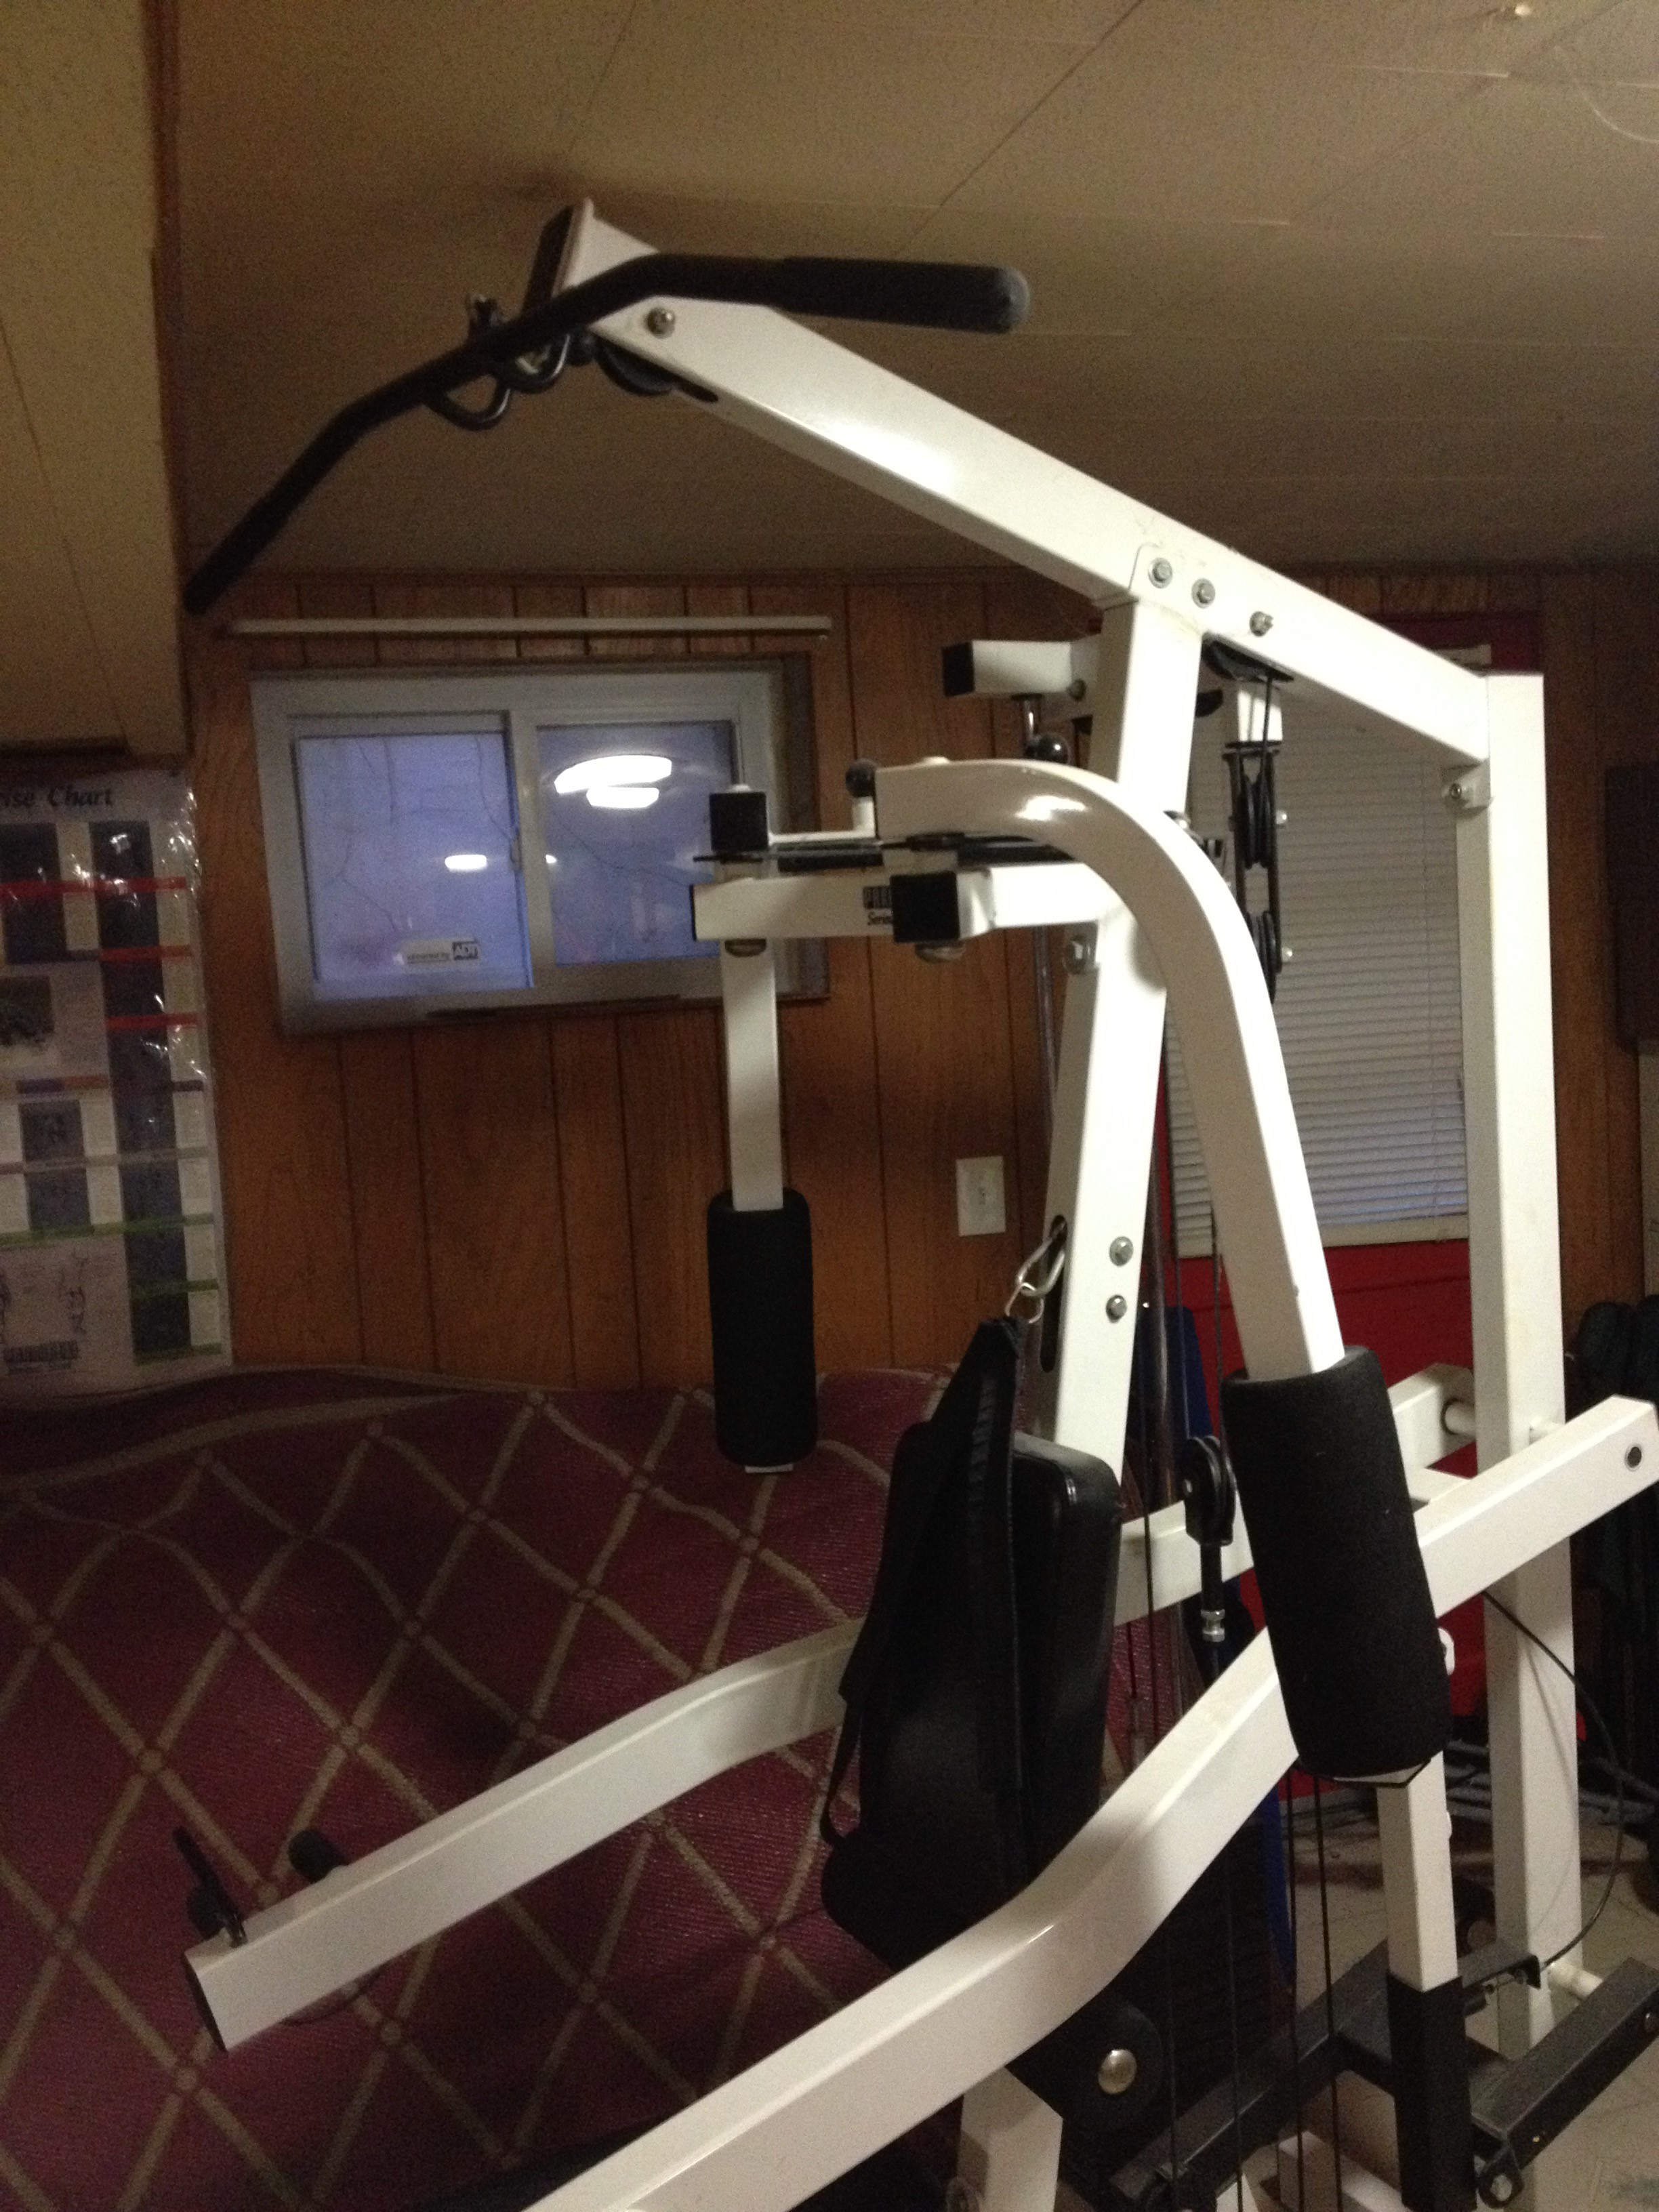 Free Exercise Equipment 2 of 2